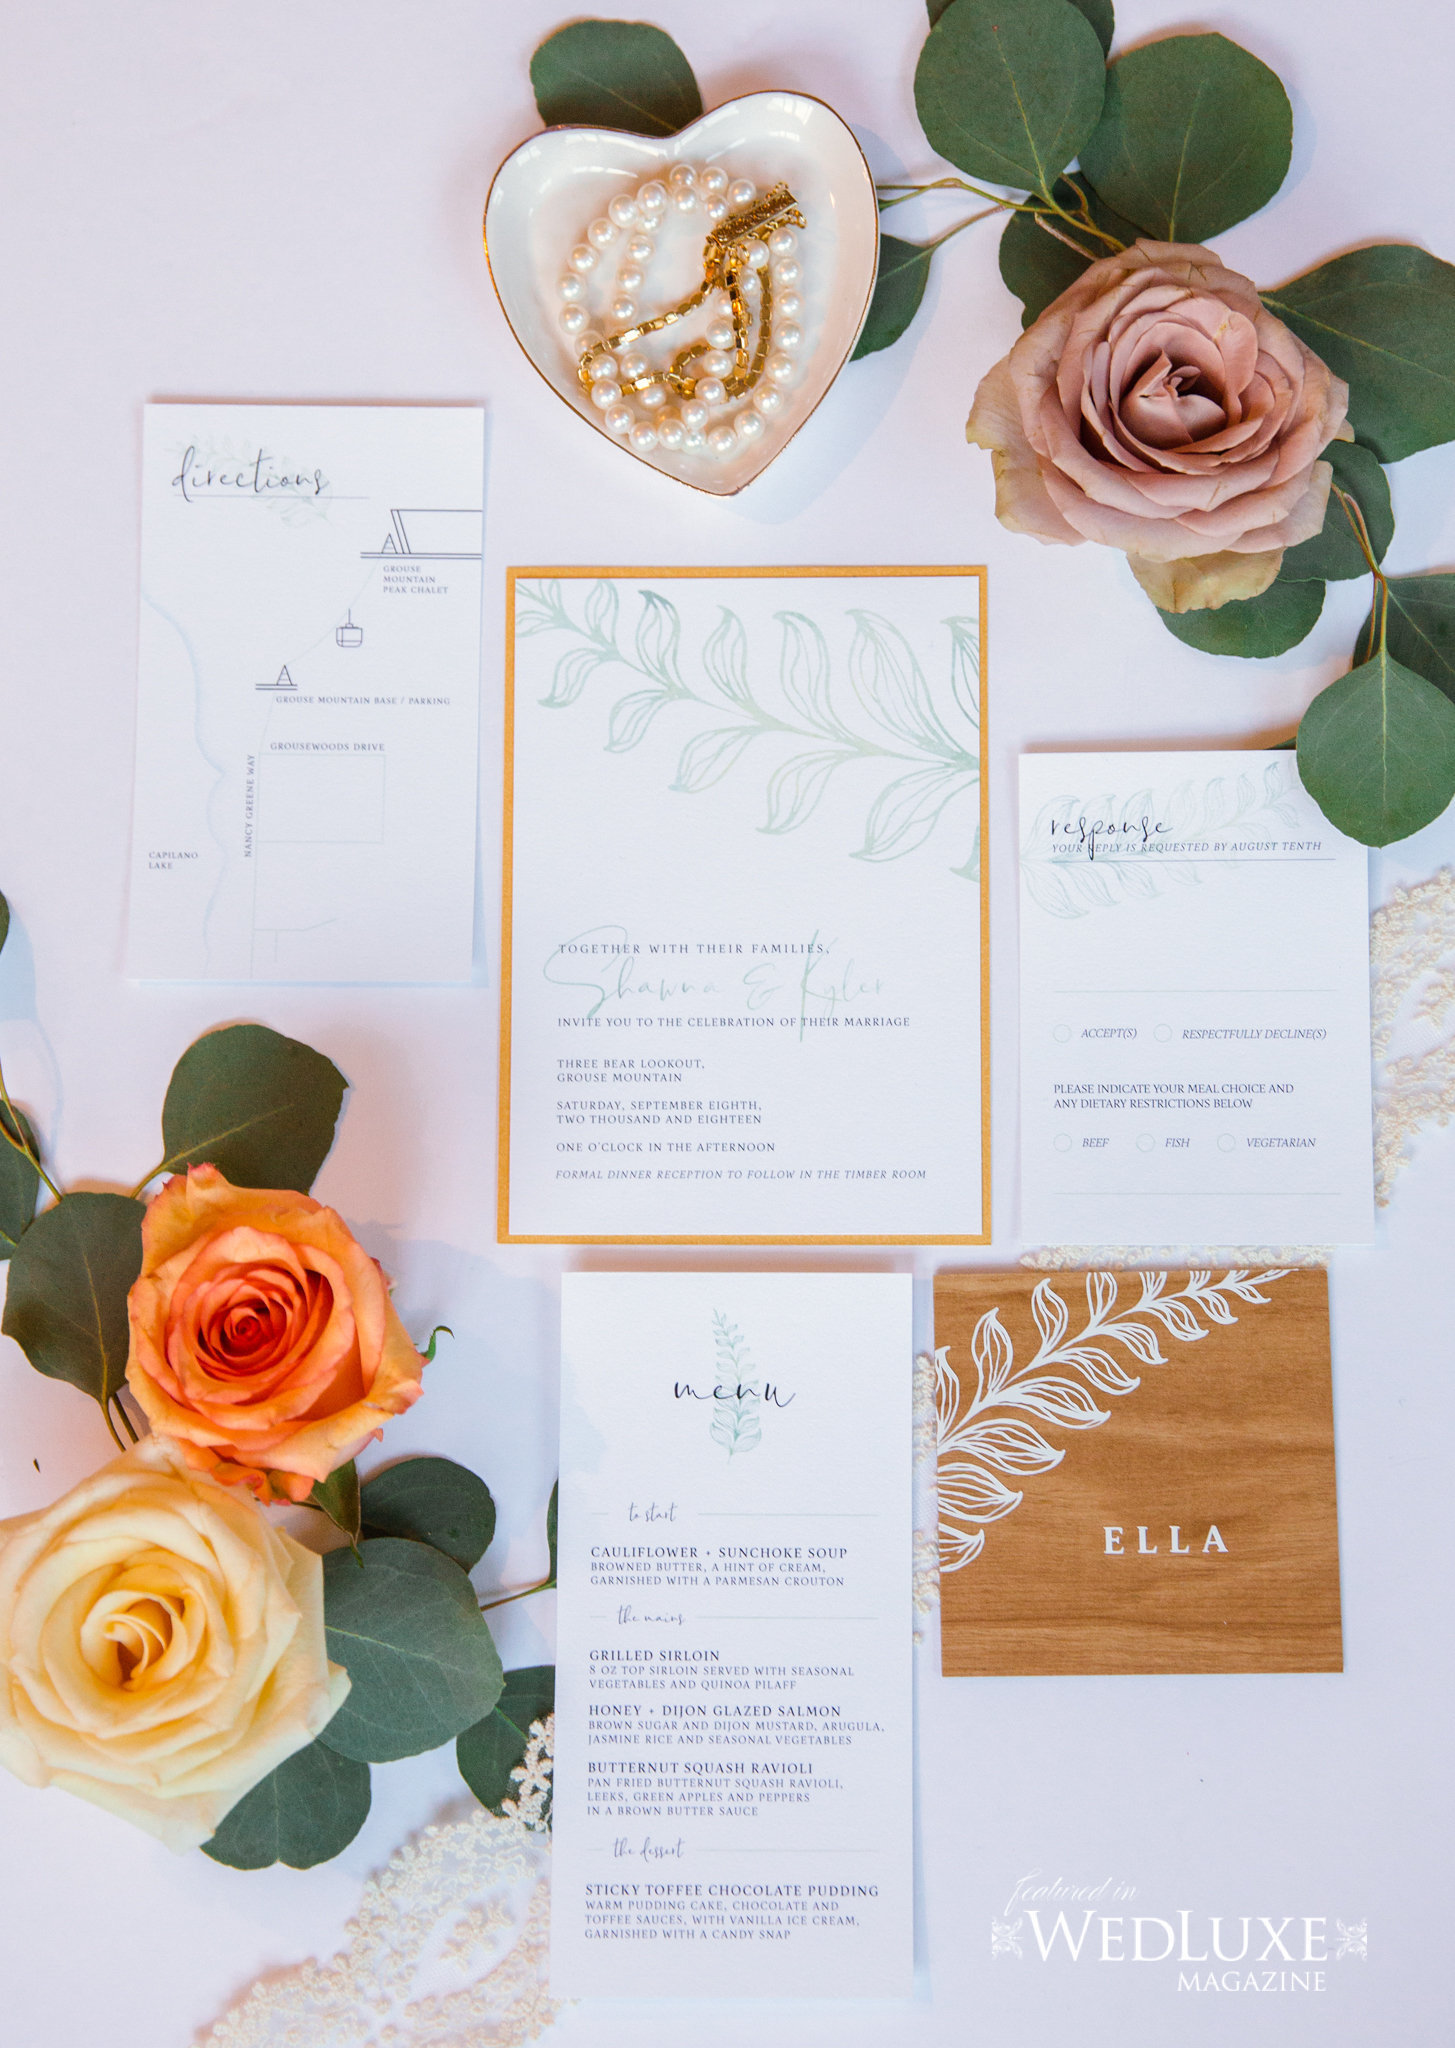 Styled Wedluxe Magazine Rustic Retreat invitations flat lay